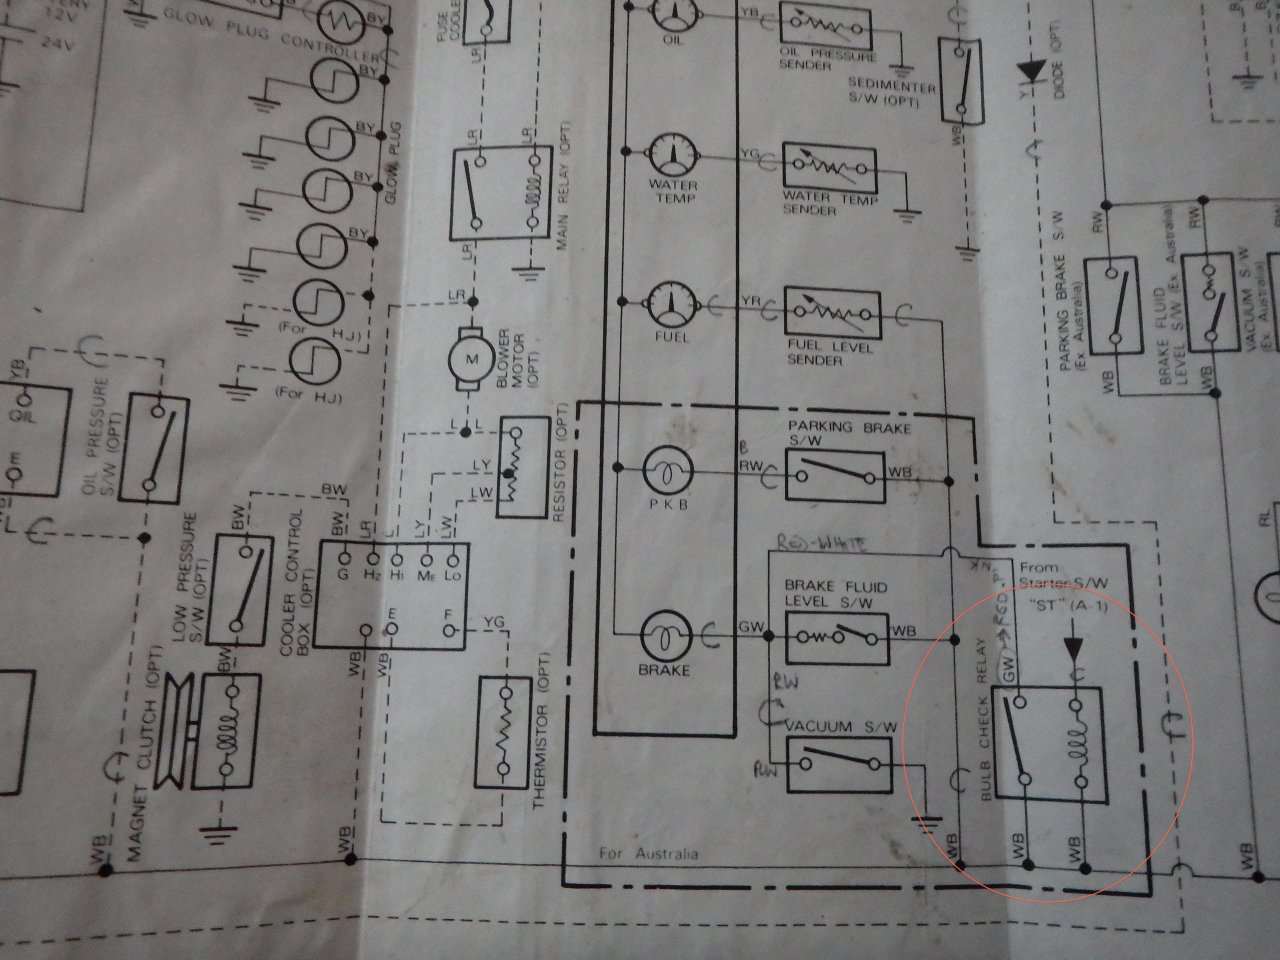 can someone explain the fuel filter light? hj47 land cruiser hj75 wiring diagram at bayanpartner.co